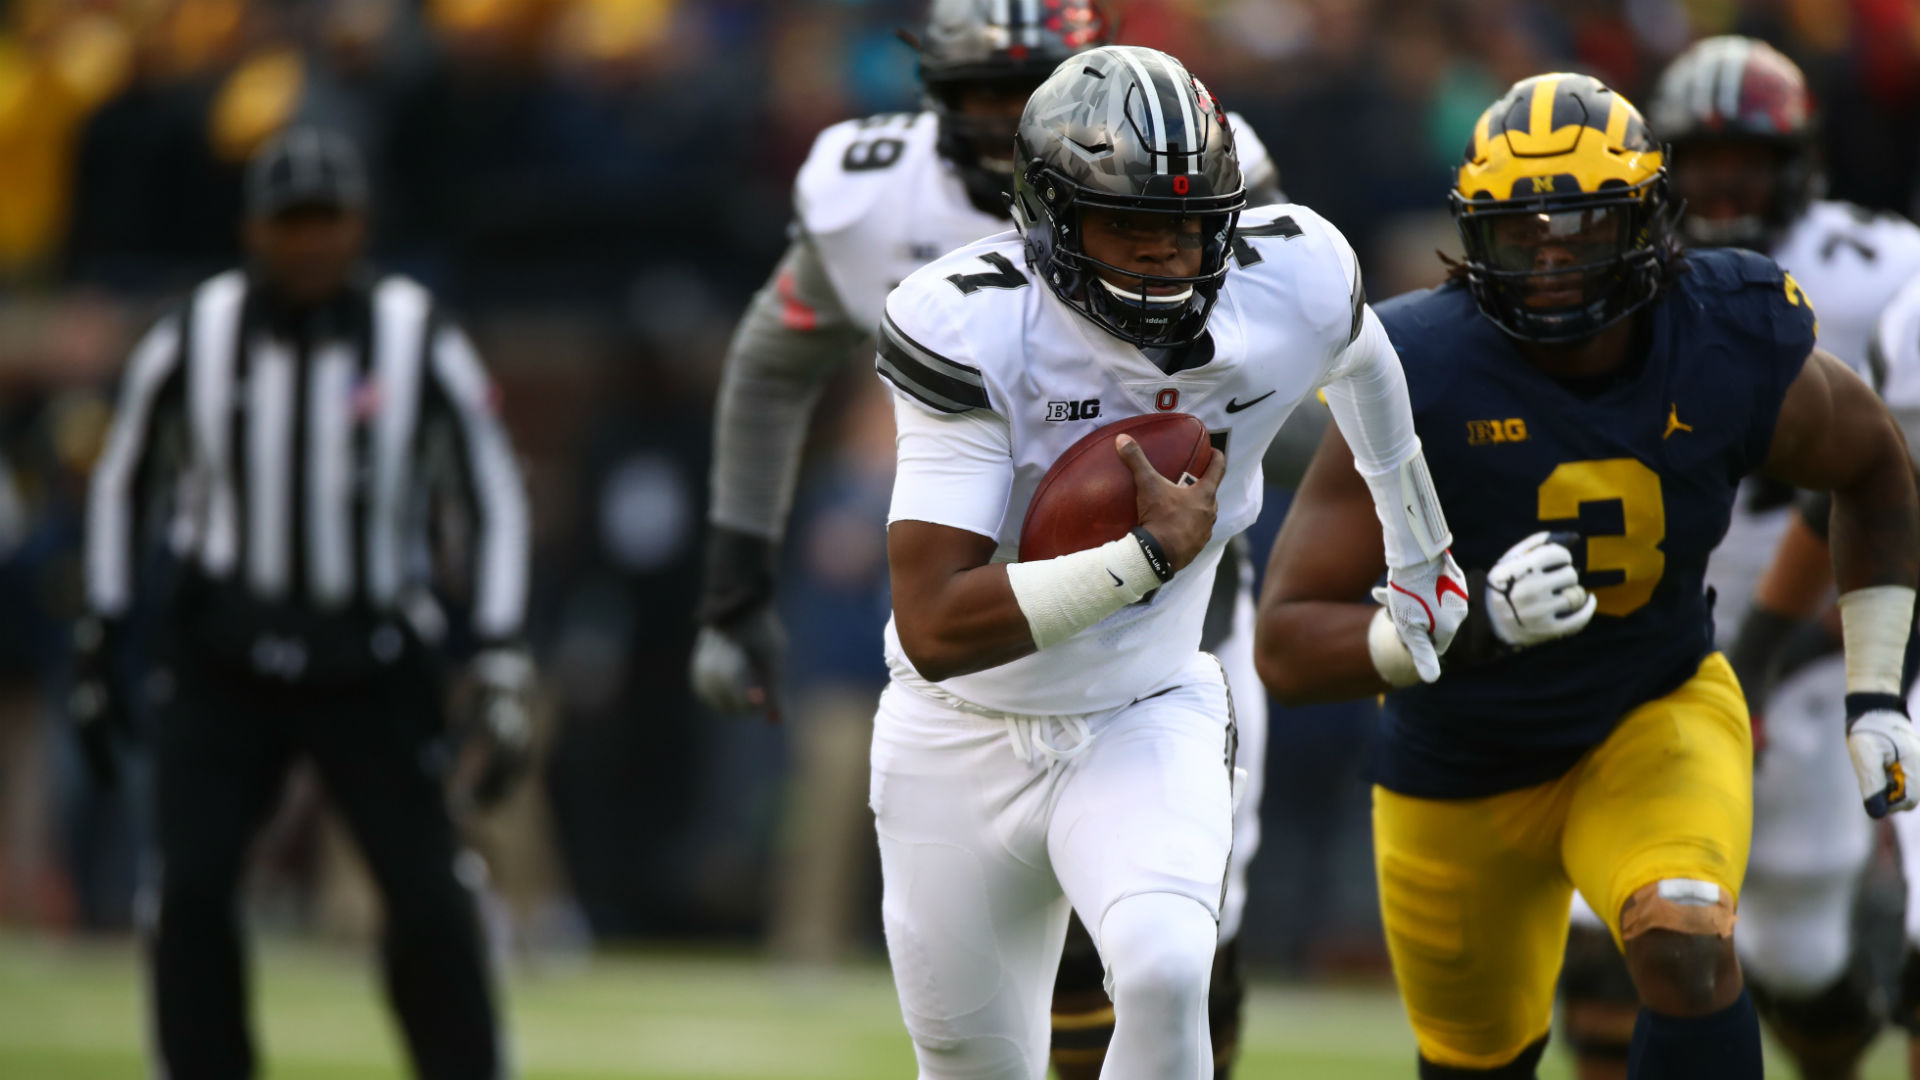 Ohio State Rallies Past Michigan; JT Barrett Injured in Sideline Incident